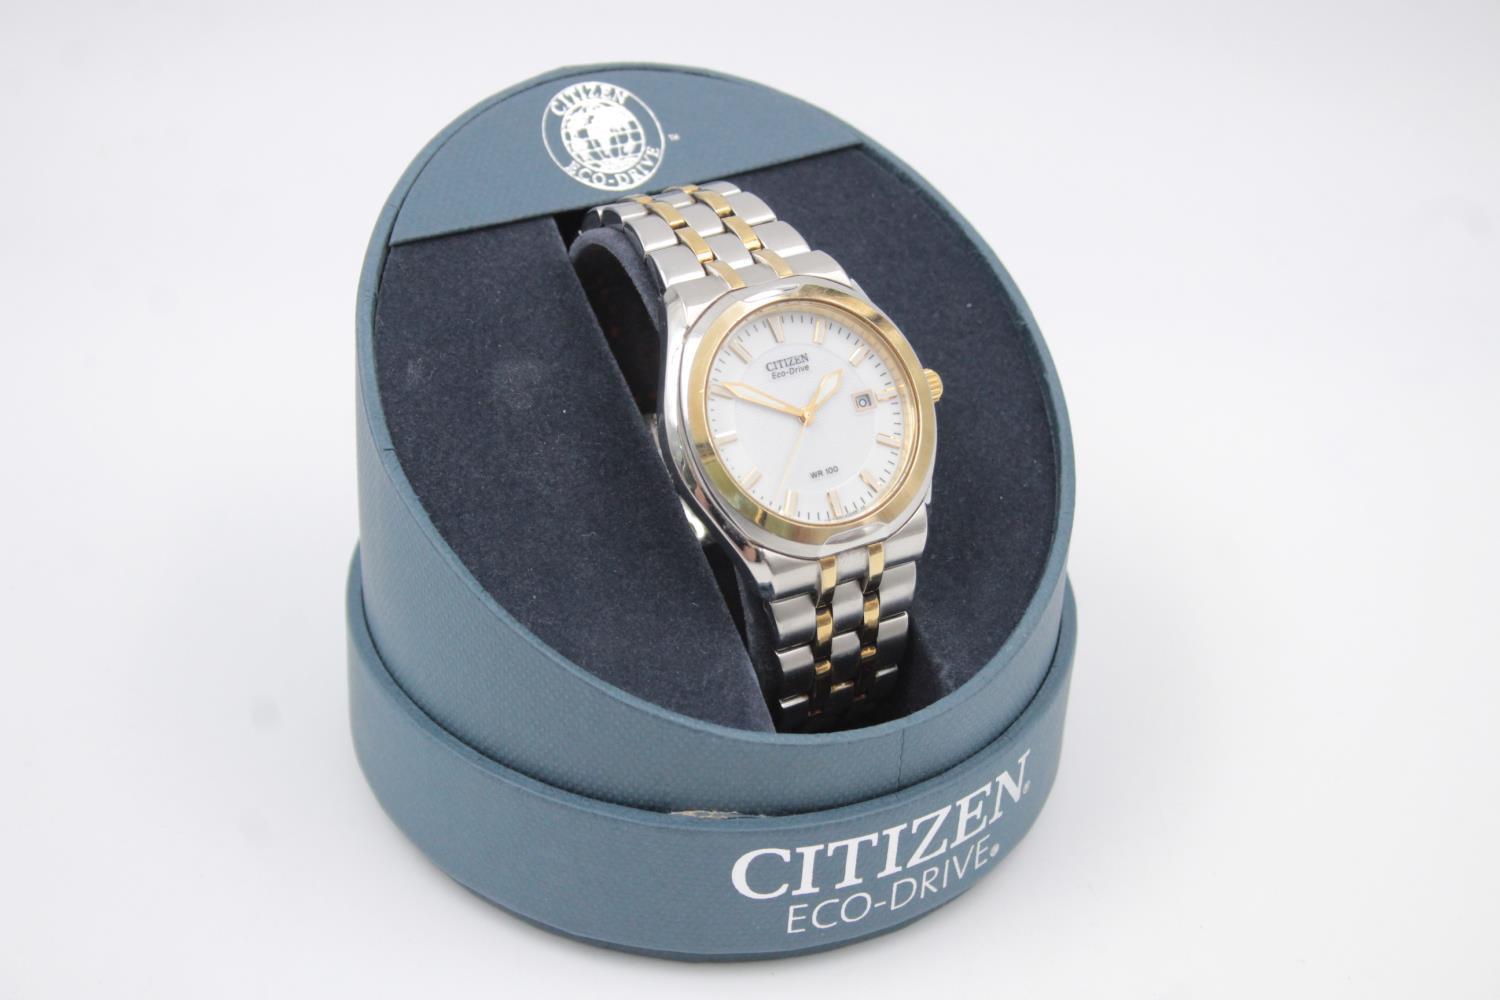 Gents CITIZEN Eco-Drive WR100 Two Tone WRISTWATCH WORKING in Original Box